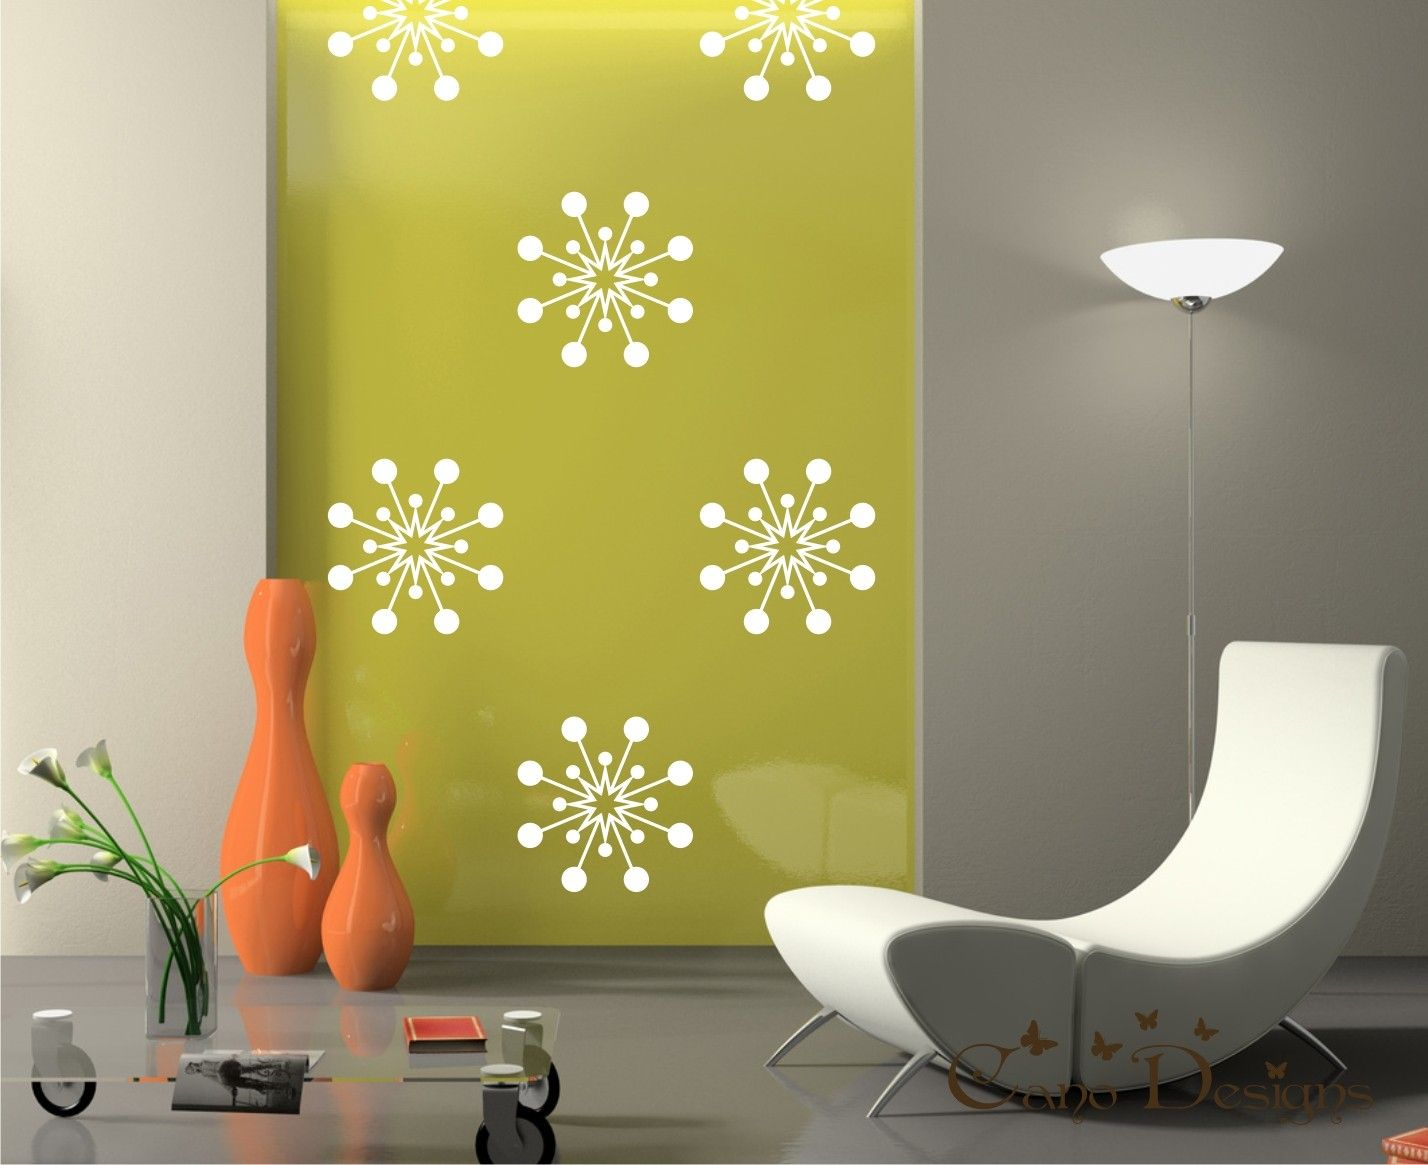 Vinyl Wall Decals | Kids rooms | Pinterest | Wall decals, Walls and ...